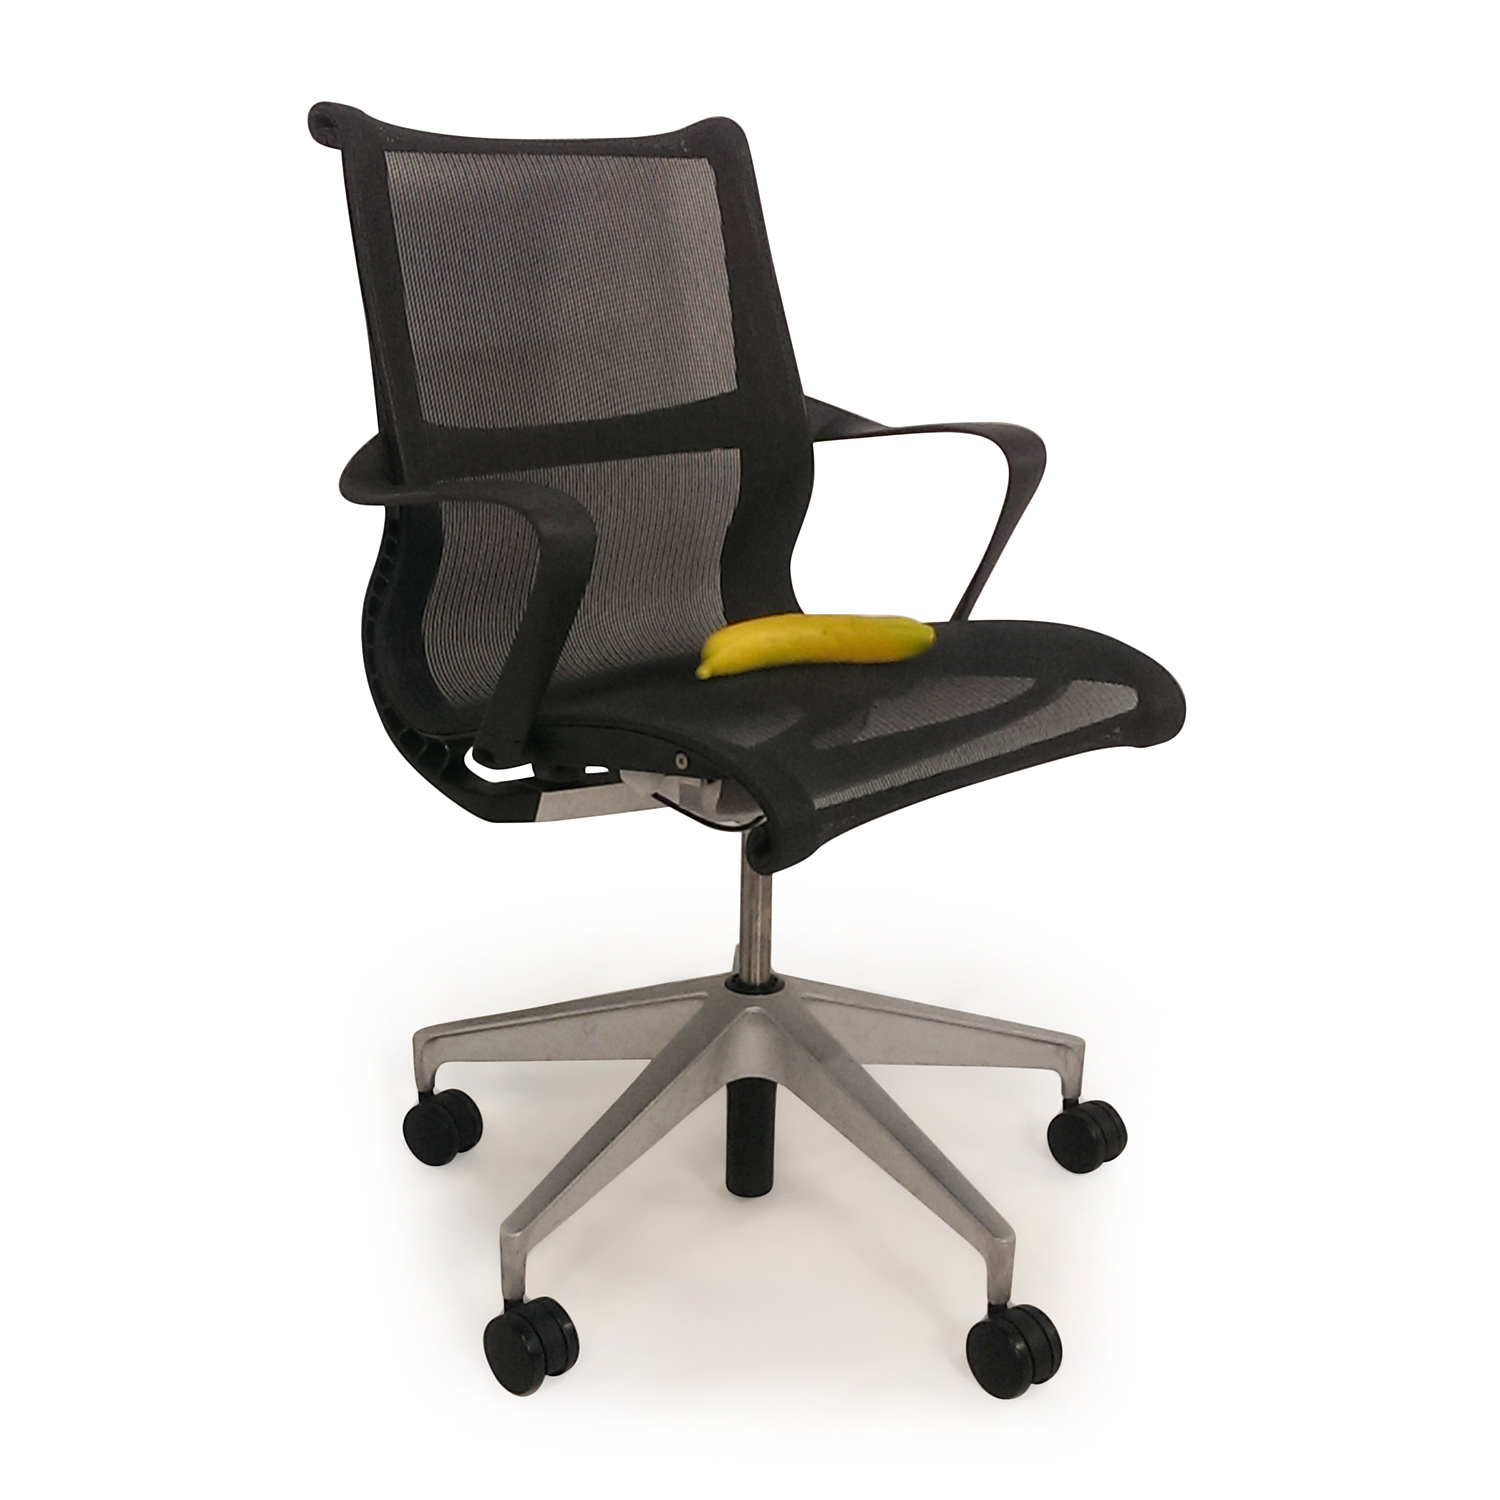 Ergonomic Mesh Chair 90 Off Ergonomic Mesh Computer Chair Chairs